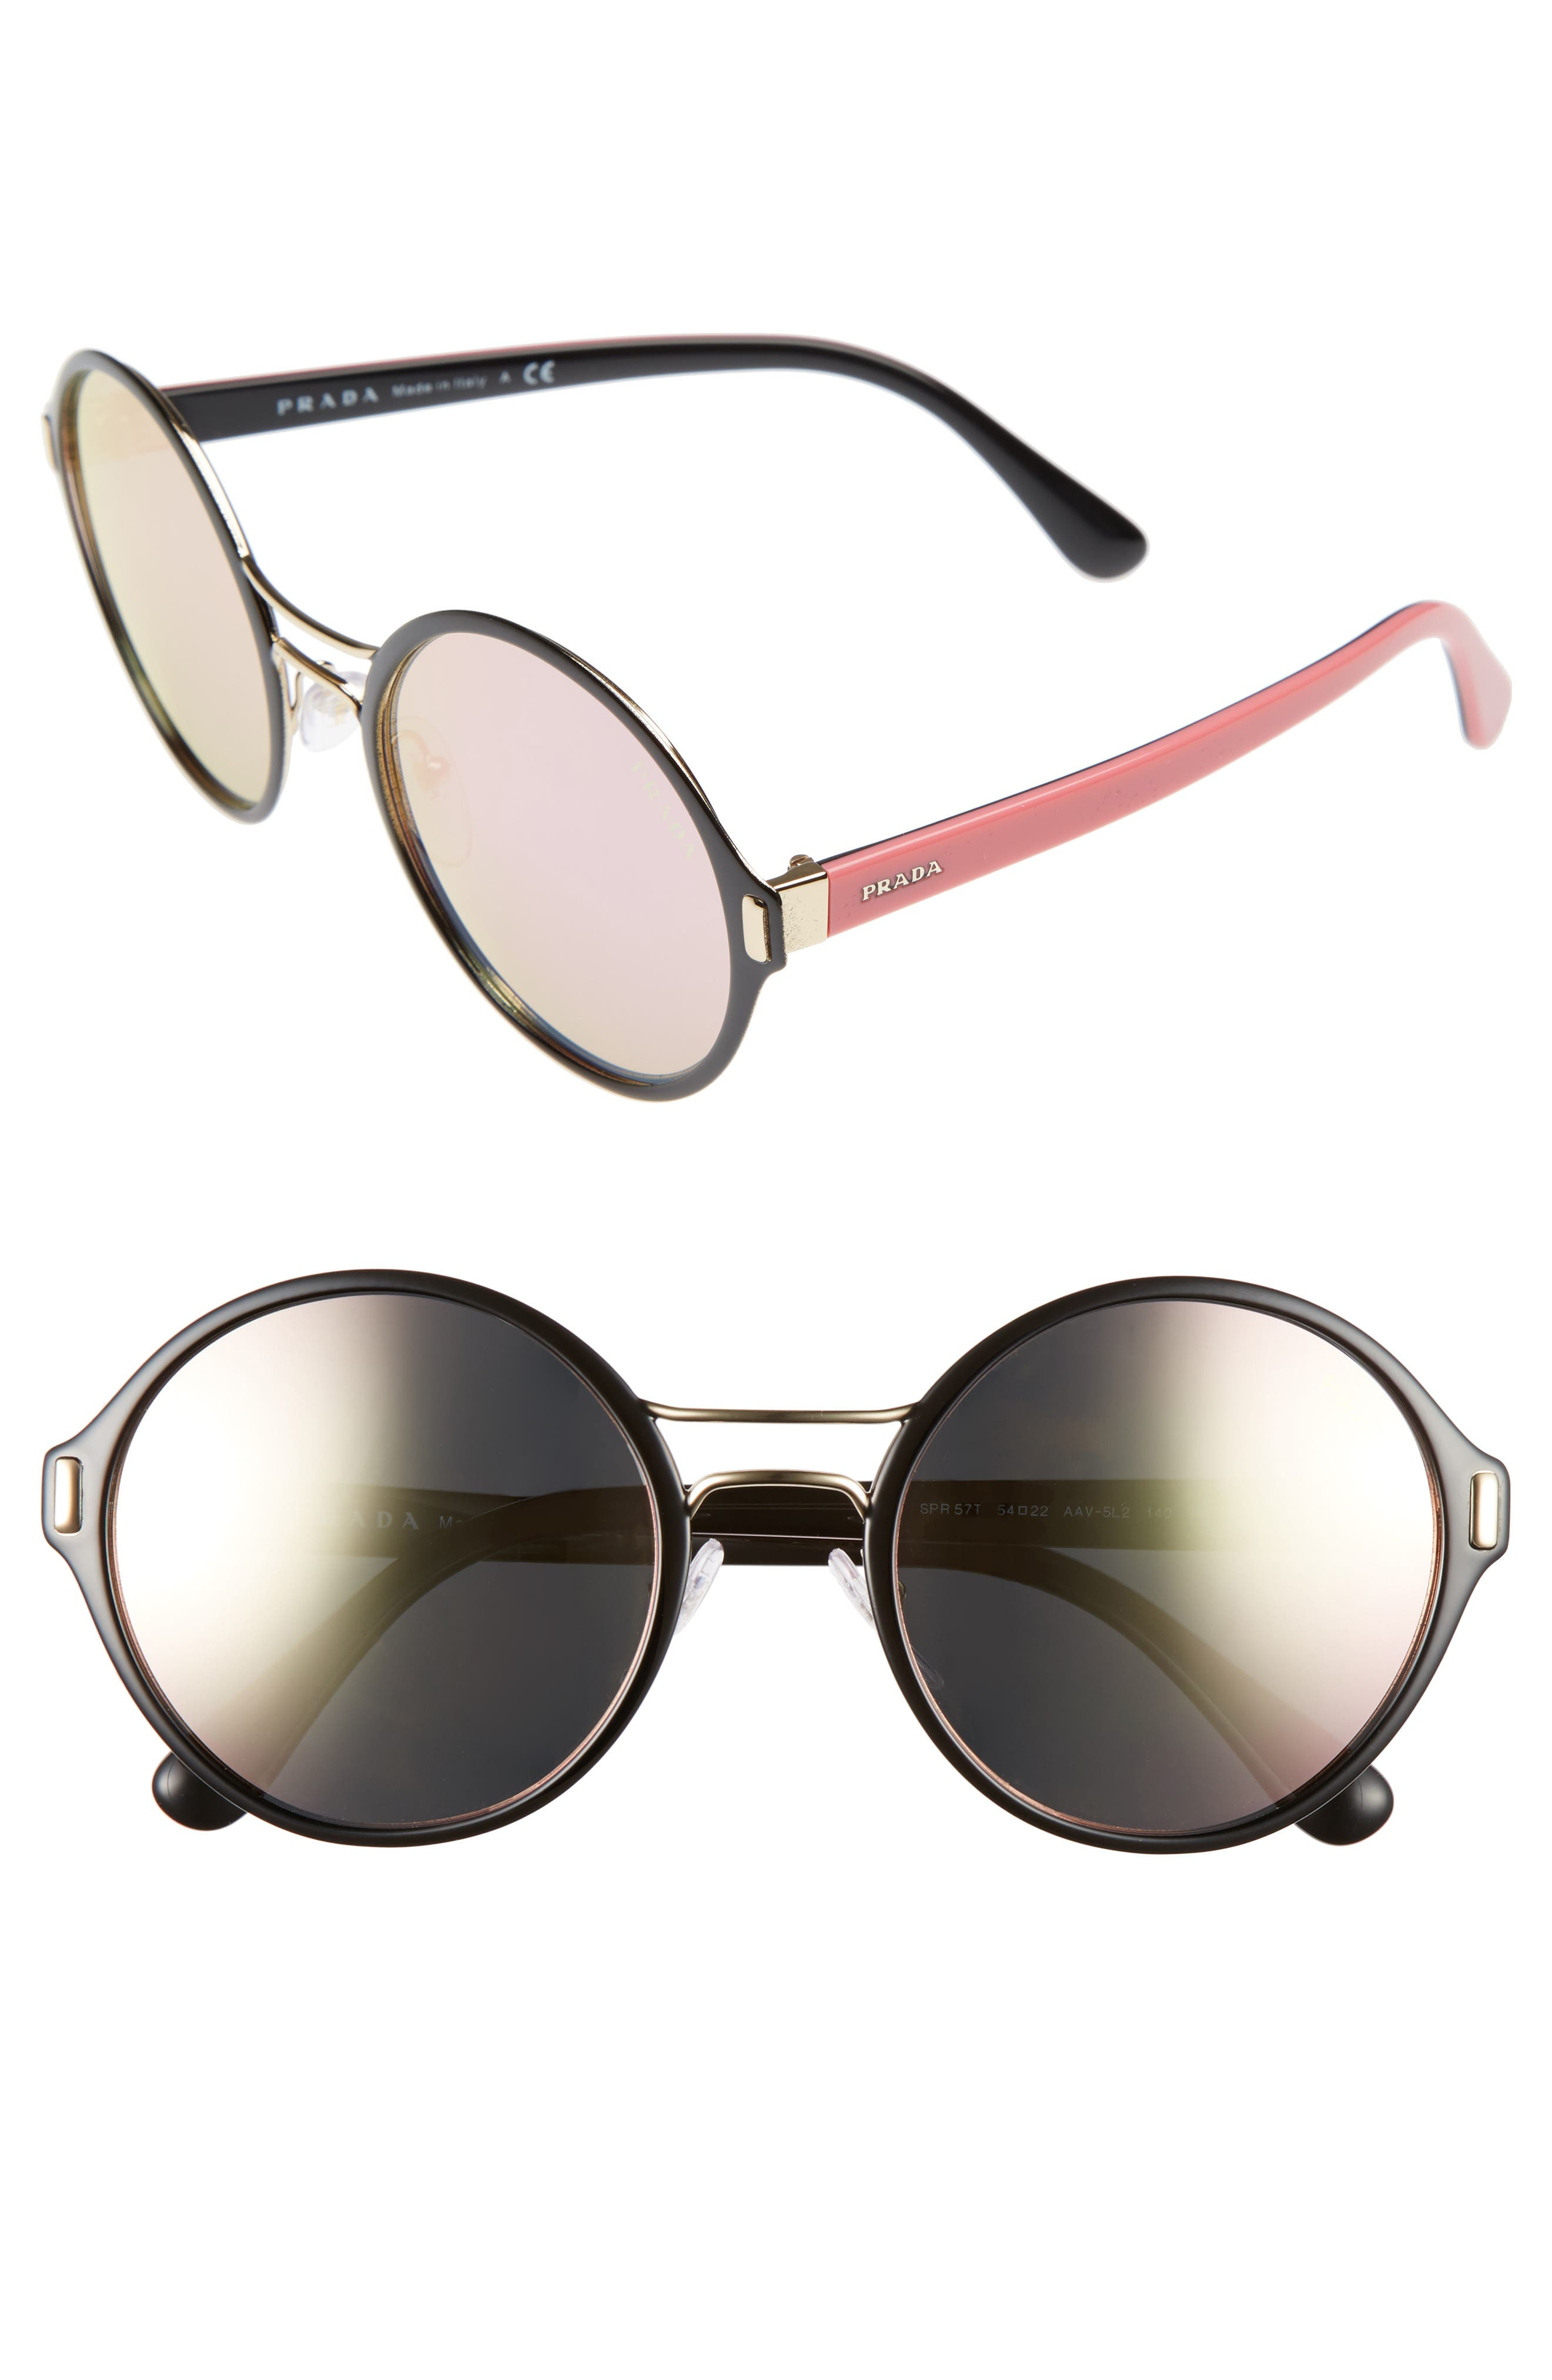 54mm Mirrored Round Sunglasses,                         Main,                         color, Gold/ Black